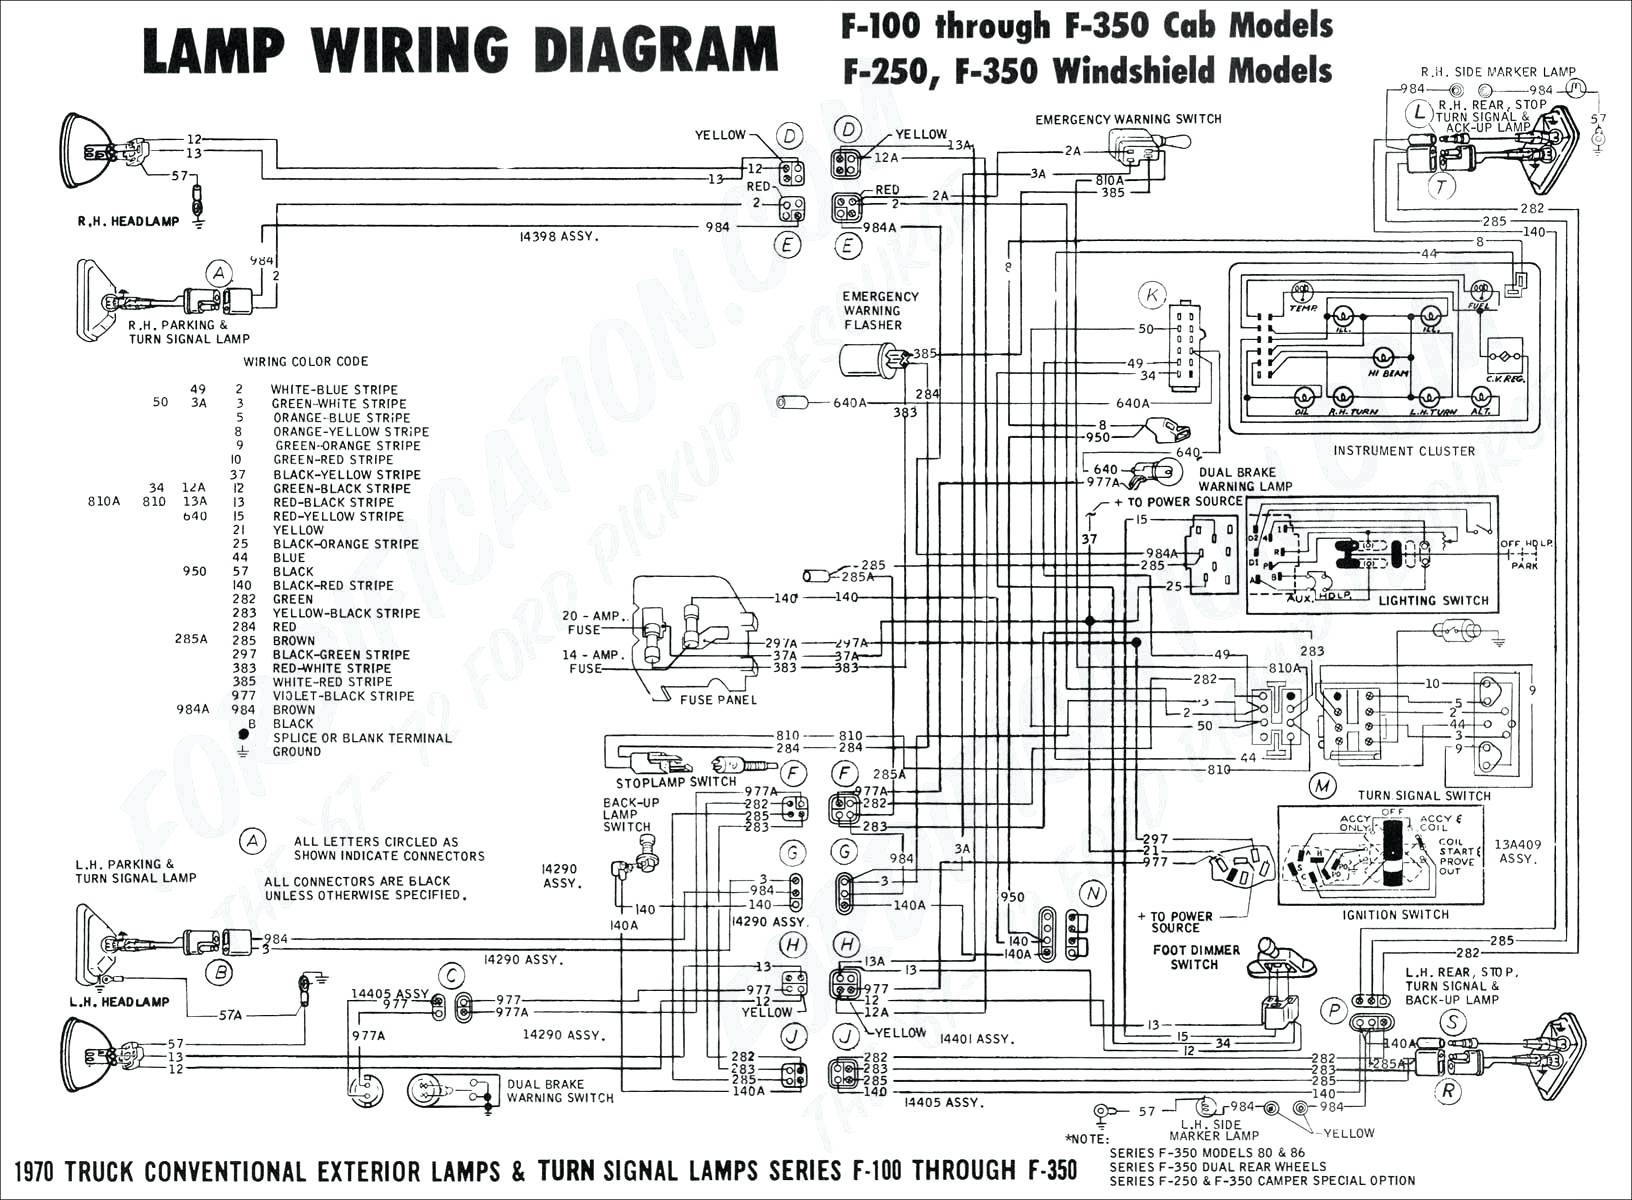 Ford Wiring Harness Diagram - Republicreformjusticeparty - Universal Trailer Wiring Diagram